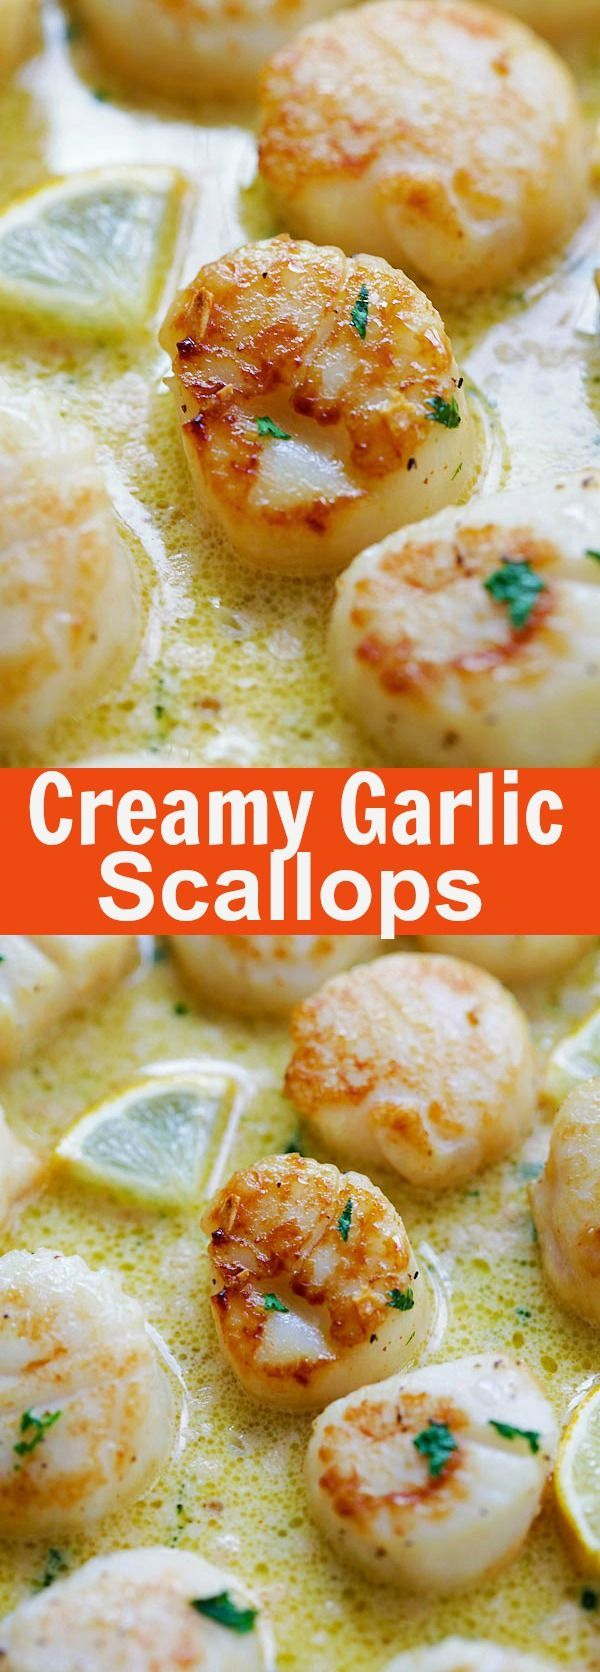 Creamy Garlic Scallops – easiest, creamiest and best scallop recipe ever. Takes only 15 mins, better than restaurants and much cheaper